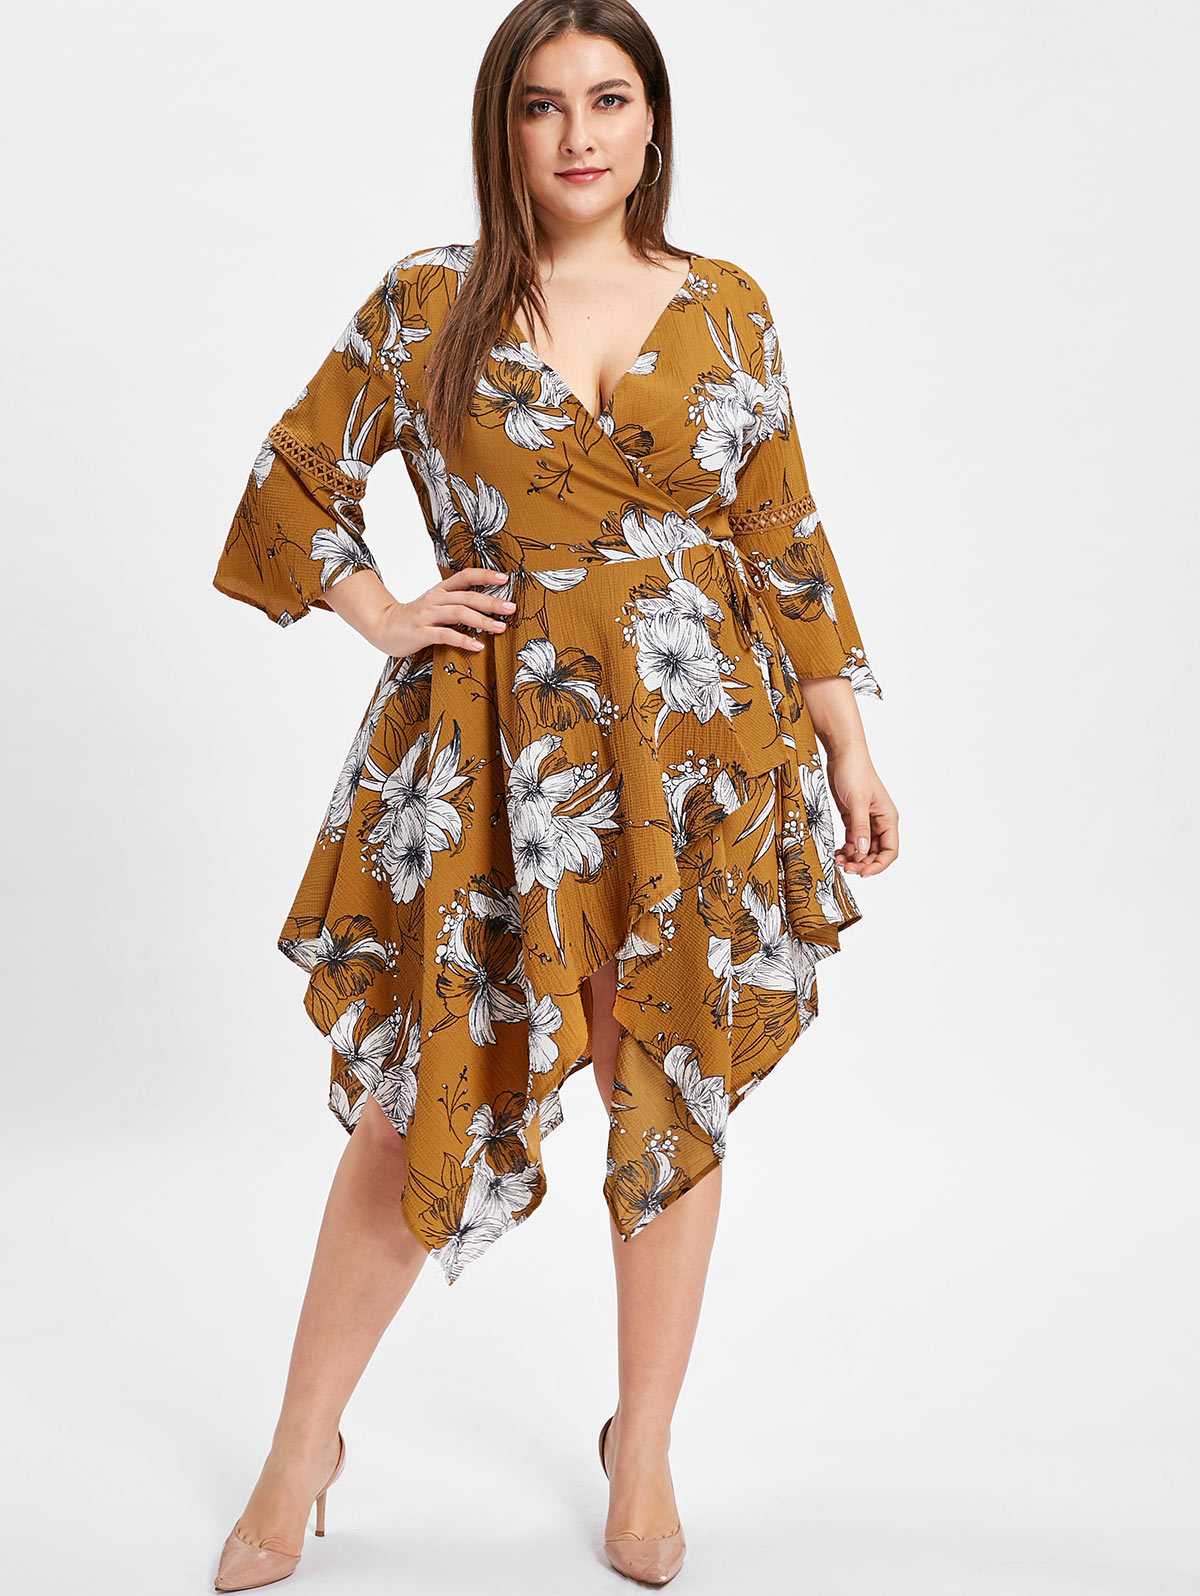 deee331916 Wipalo Women Flare Sleeve Plus Size Floral Print Wrap Dress Plunging Neck  3/4 Length Sleeves Asymmetrical Casual Dress Vestidos